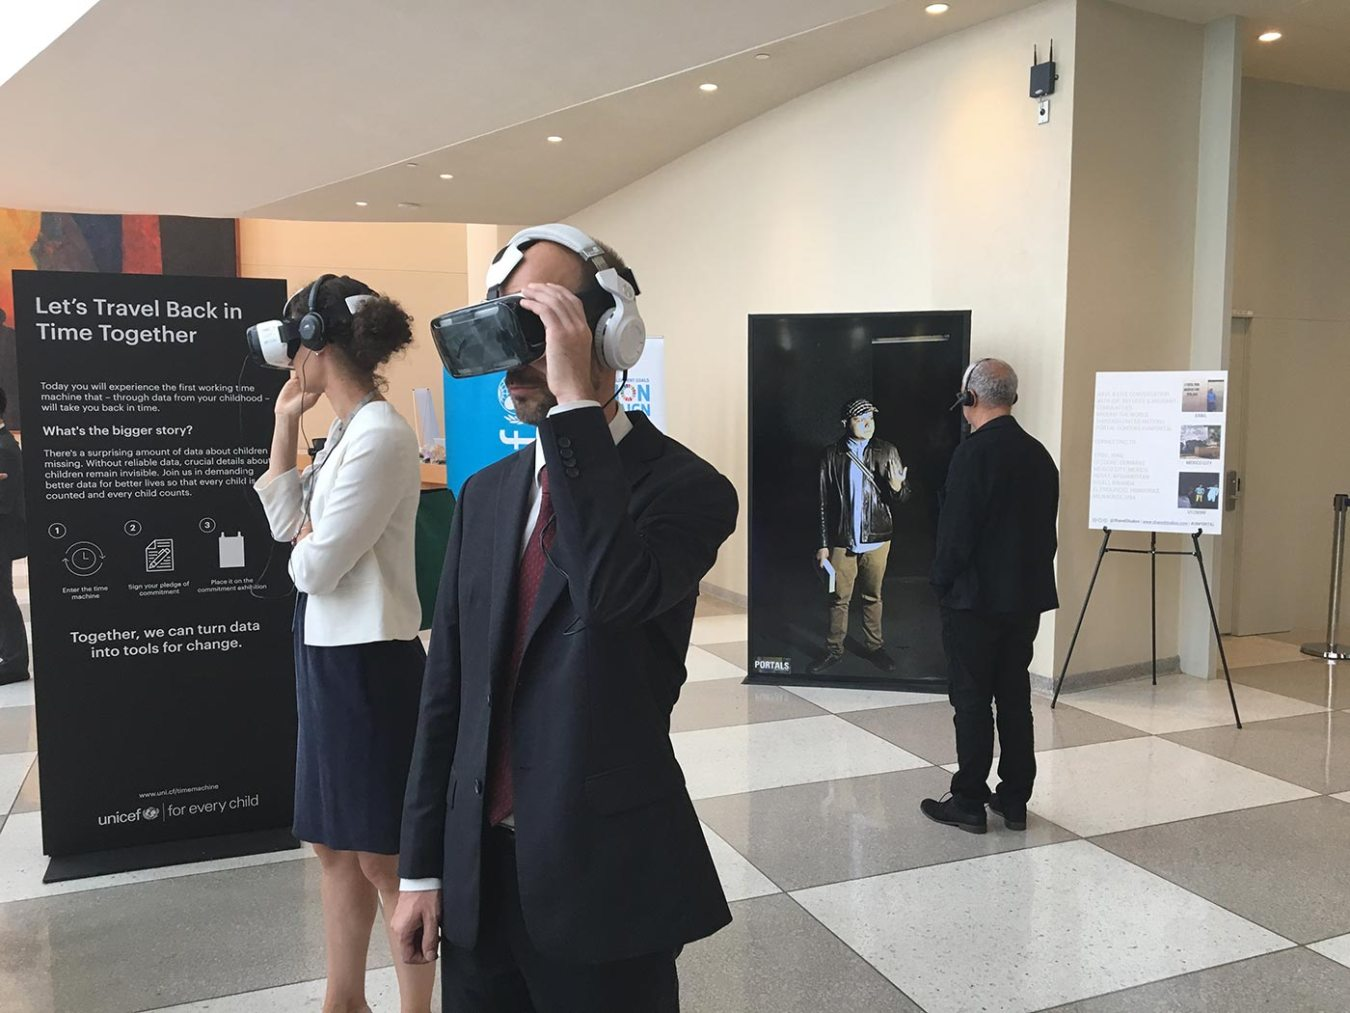 Immersive exhibition brings delegates closer than ever to refugees, displaced, and migrants during UNGA